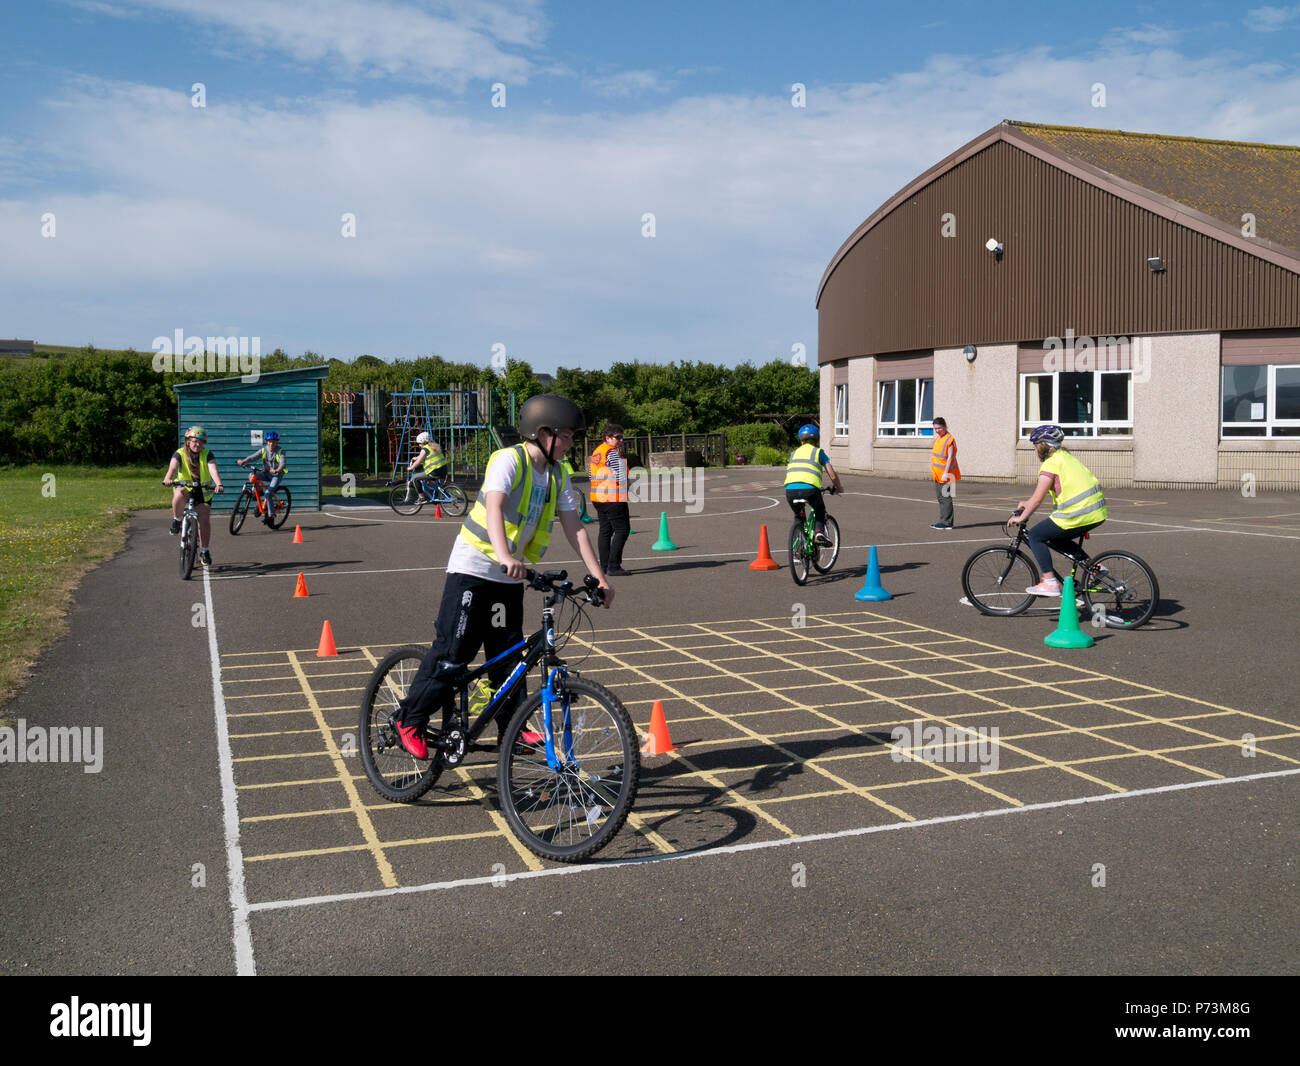 Cycle proficiency training at primary school - Stock Image